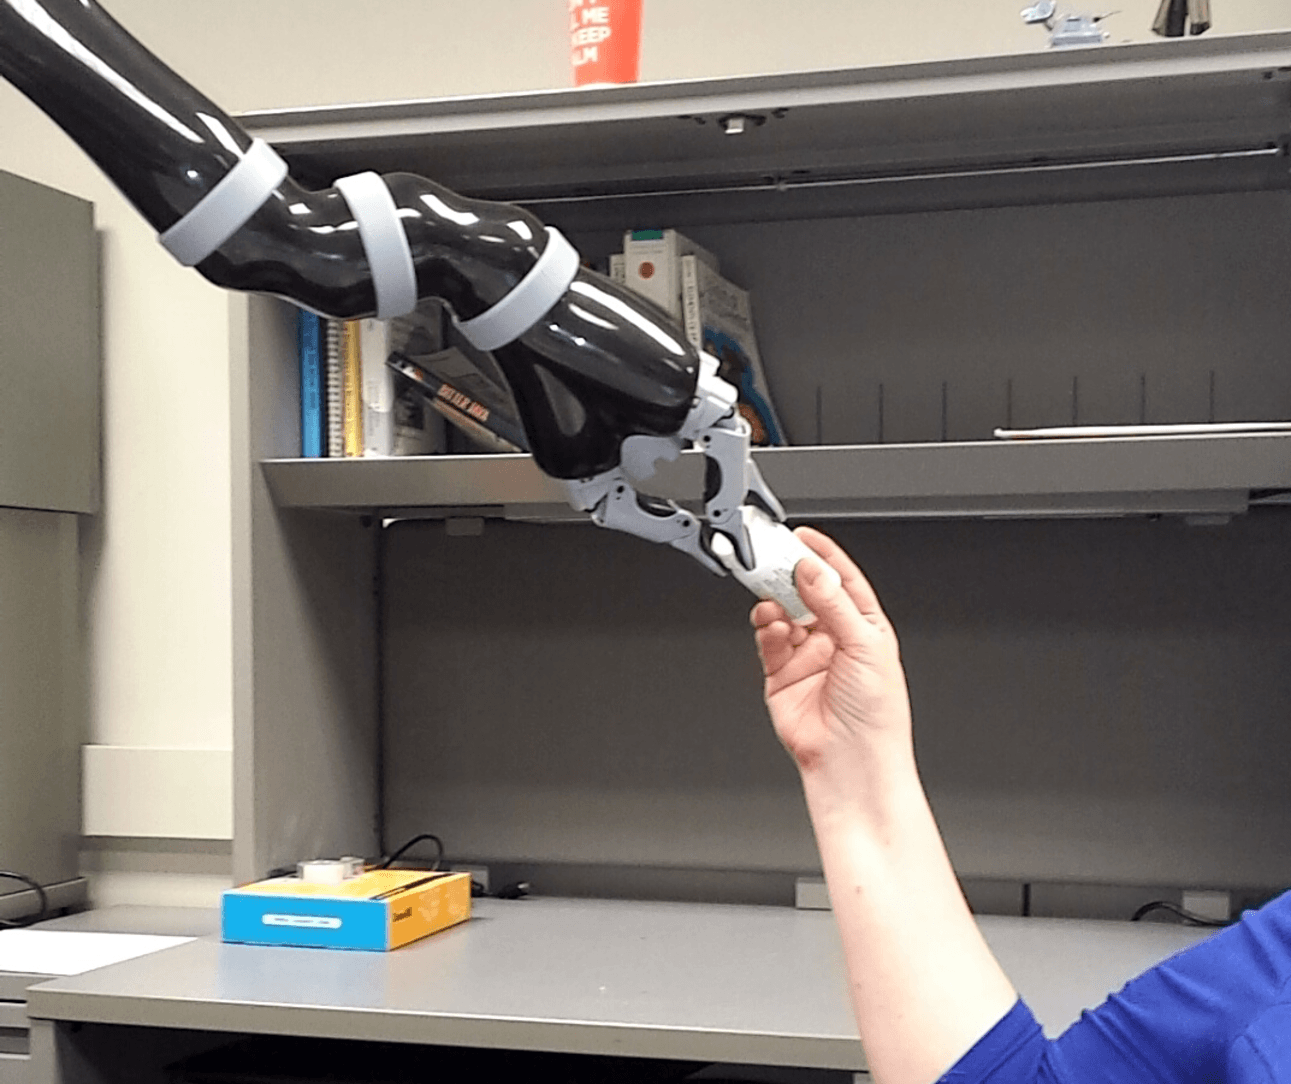 Robots can hand medicine to patients.